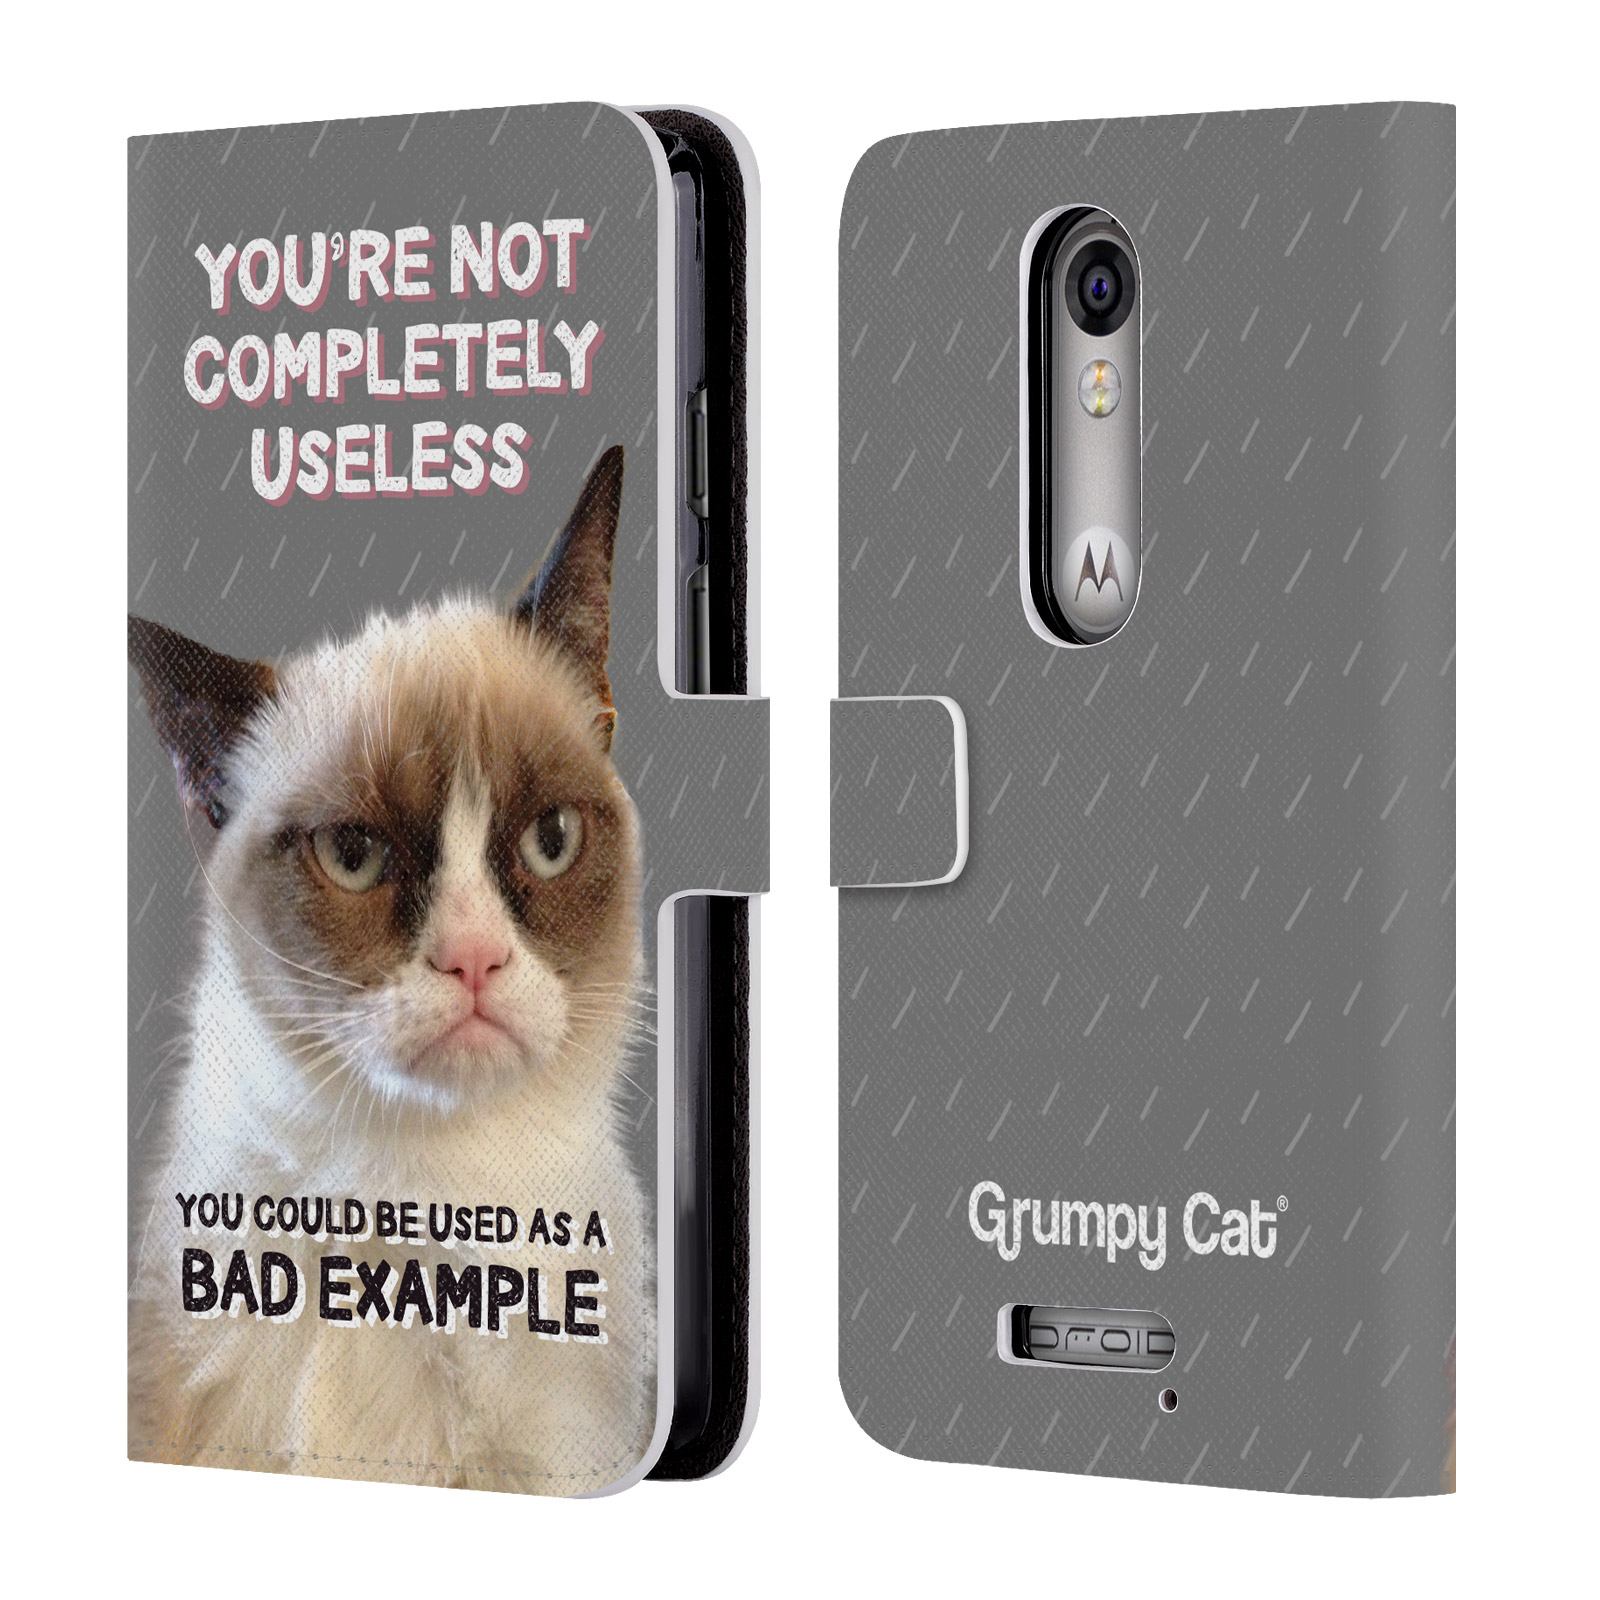 OFFICIAL GRUMPY CAT QUOTES LEATHER BOOK WALLET CASE COVER FOR MOTOROLA PHONES